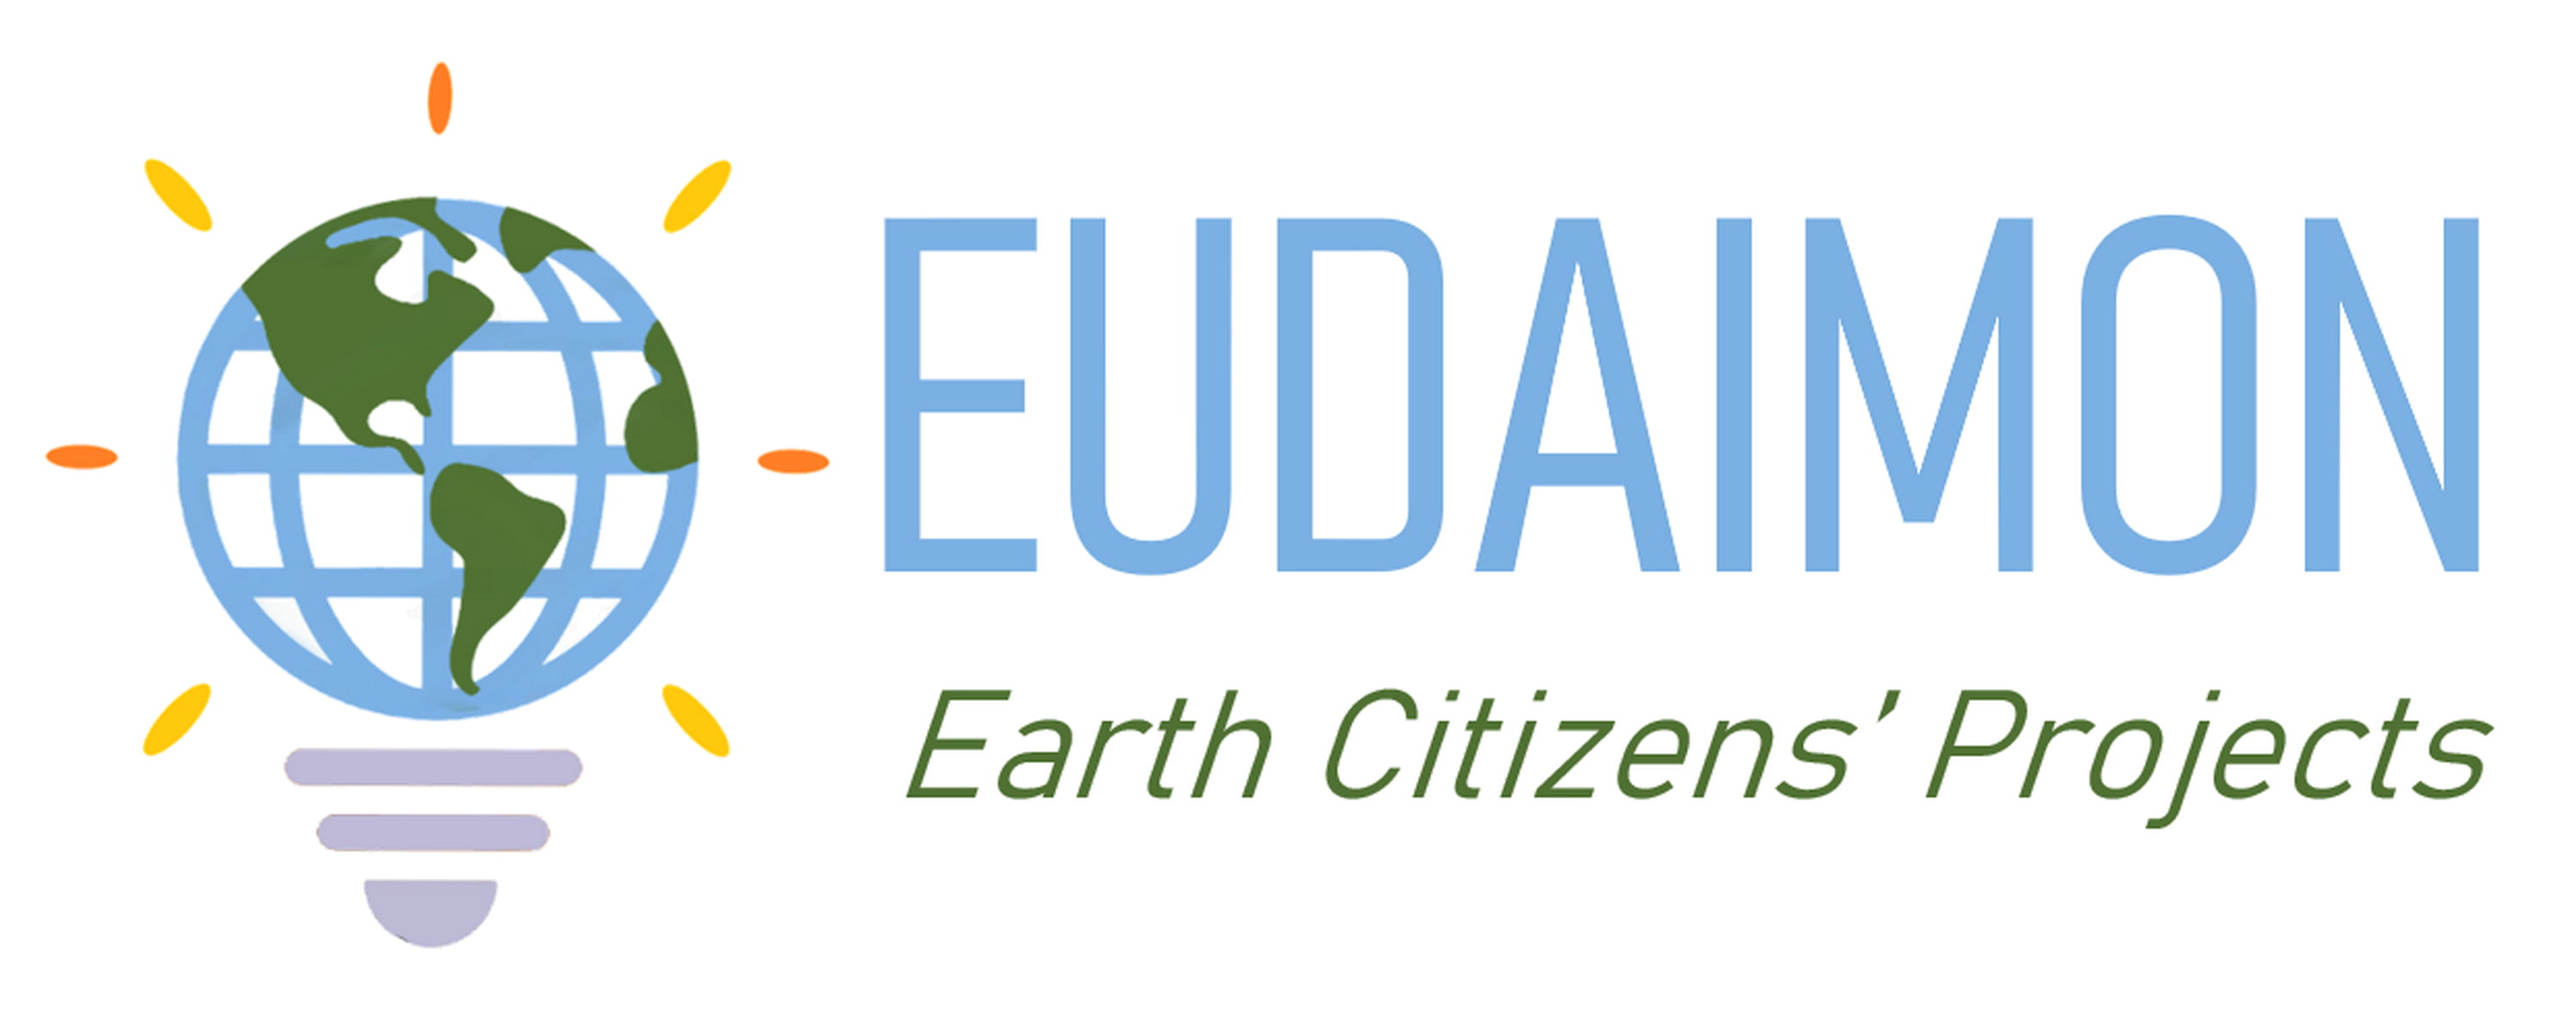 Eudaimon, Earth Citizens Project